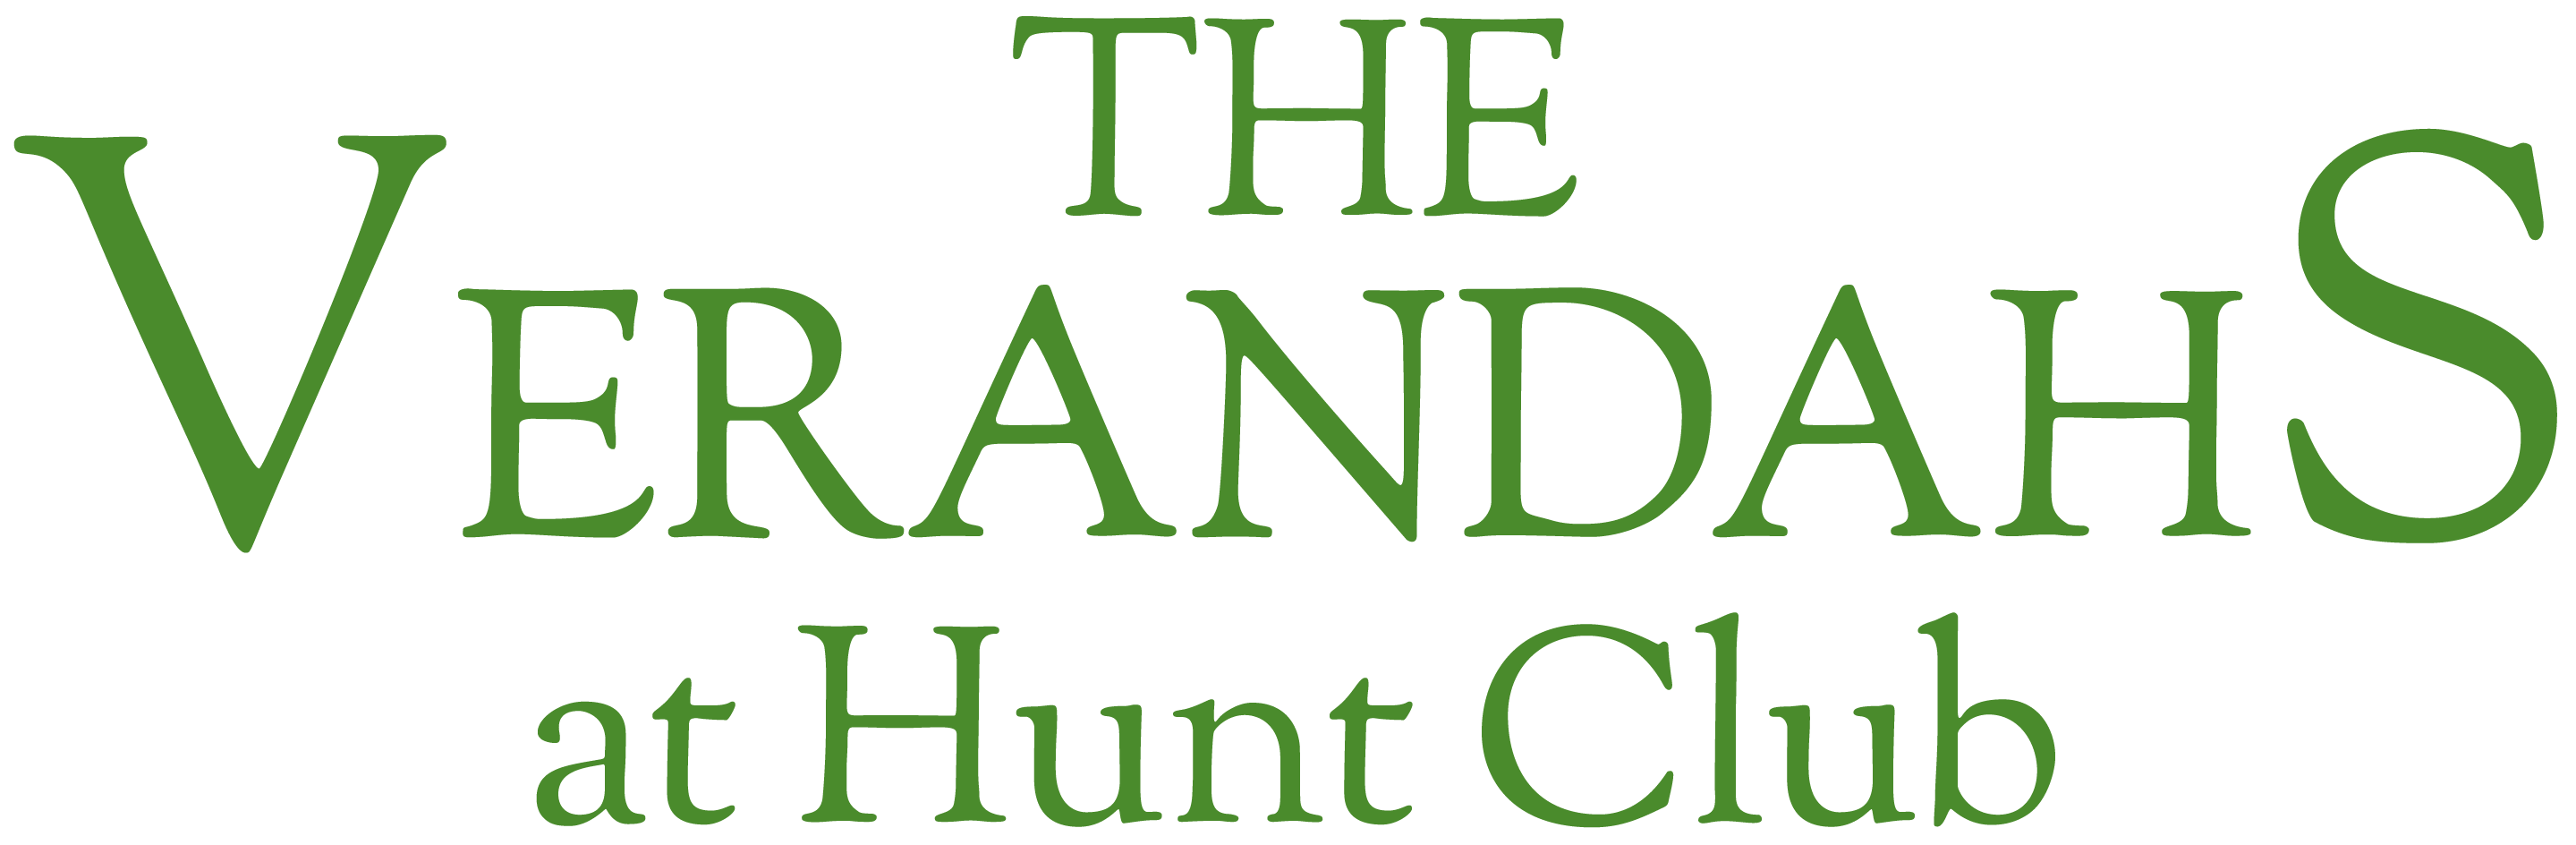 Verandahs at Hunt Club Apartment Homes Logo